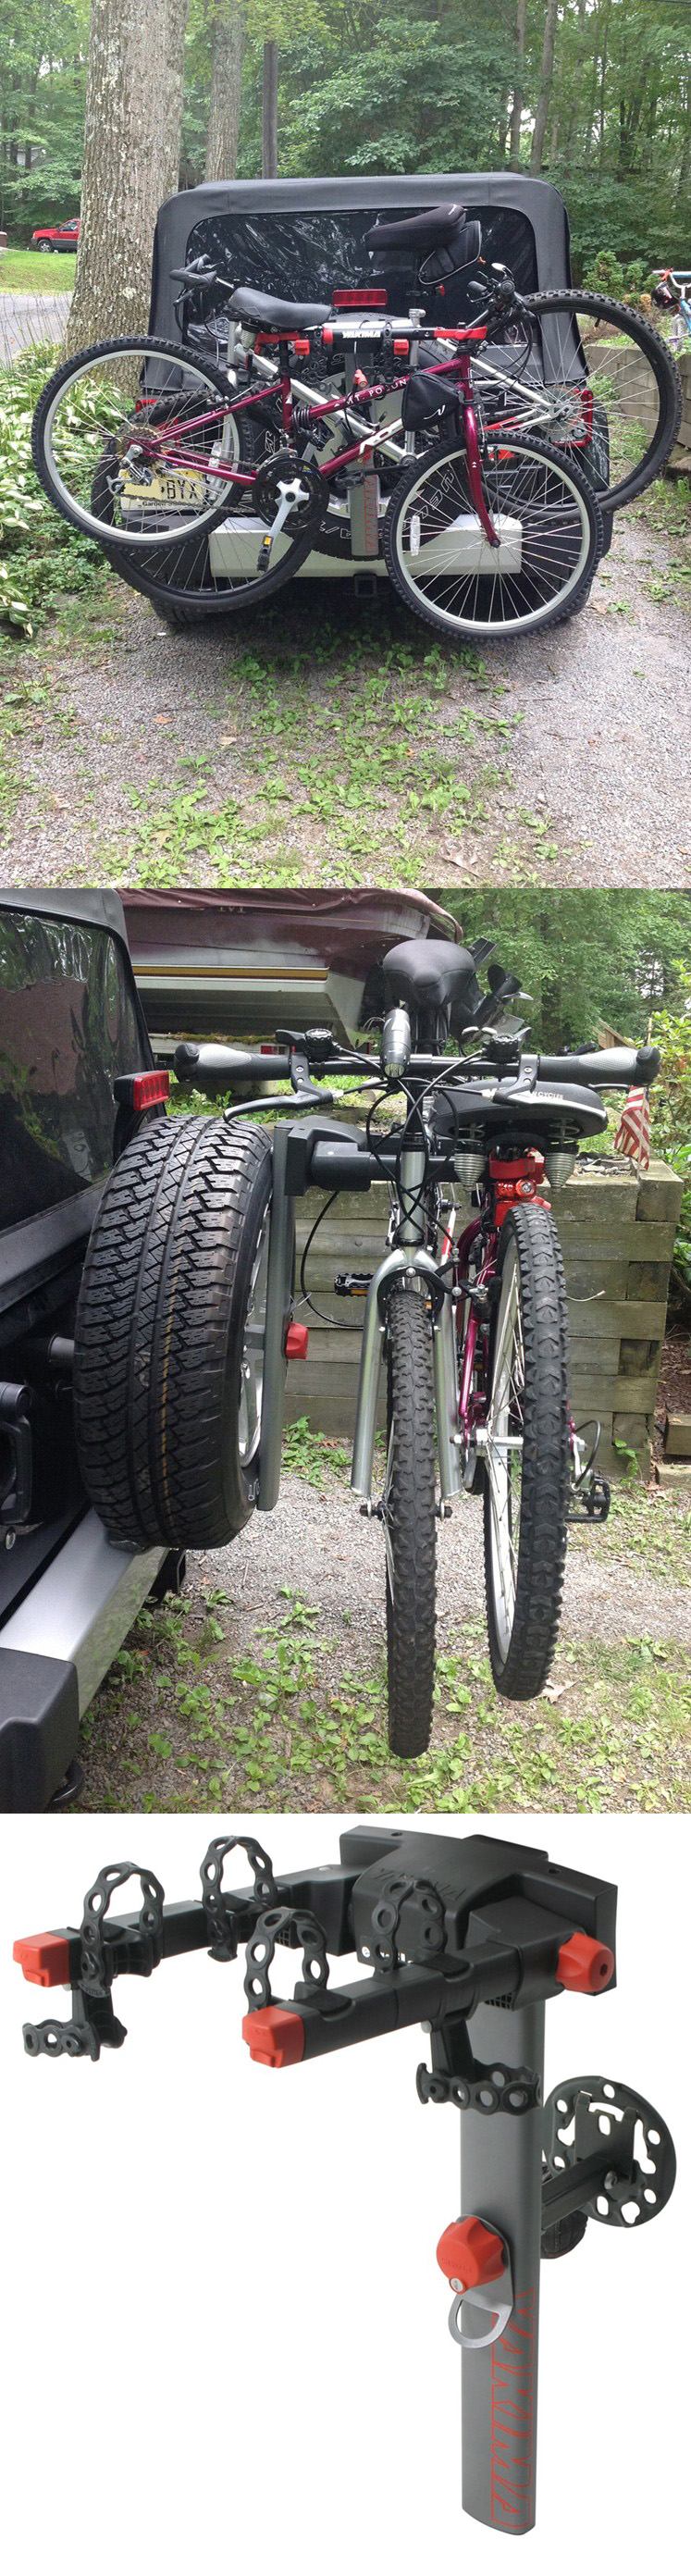 Securely mount this bike rack to the spare tire of the Jeep Wrangler